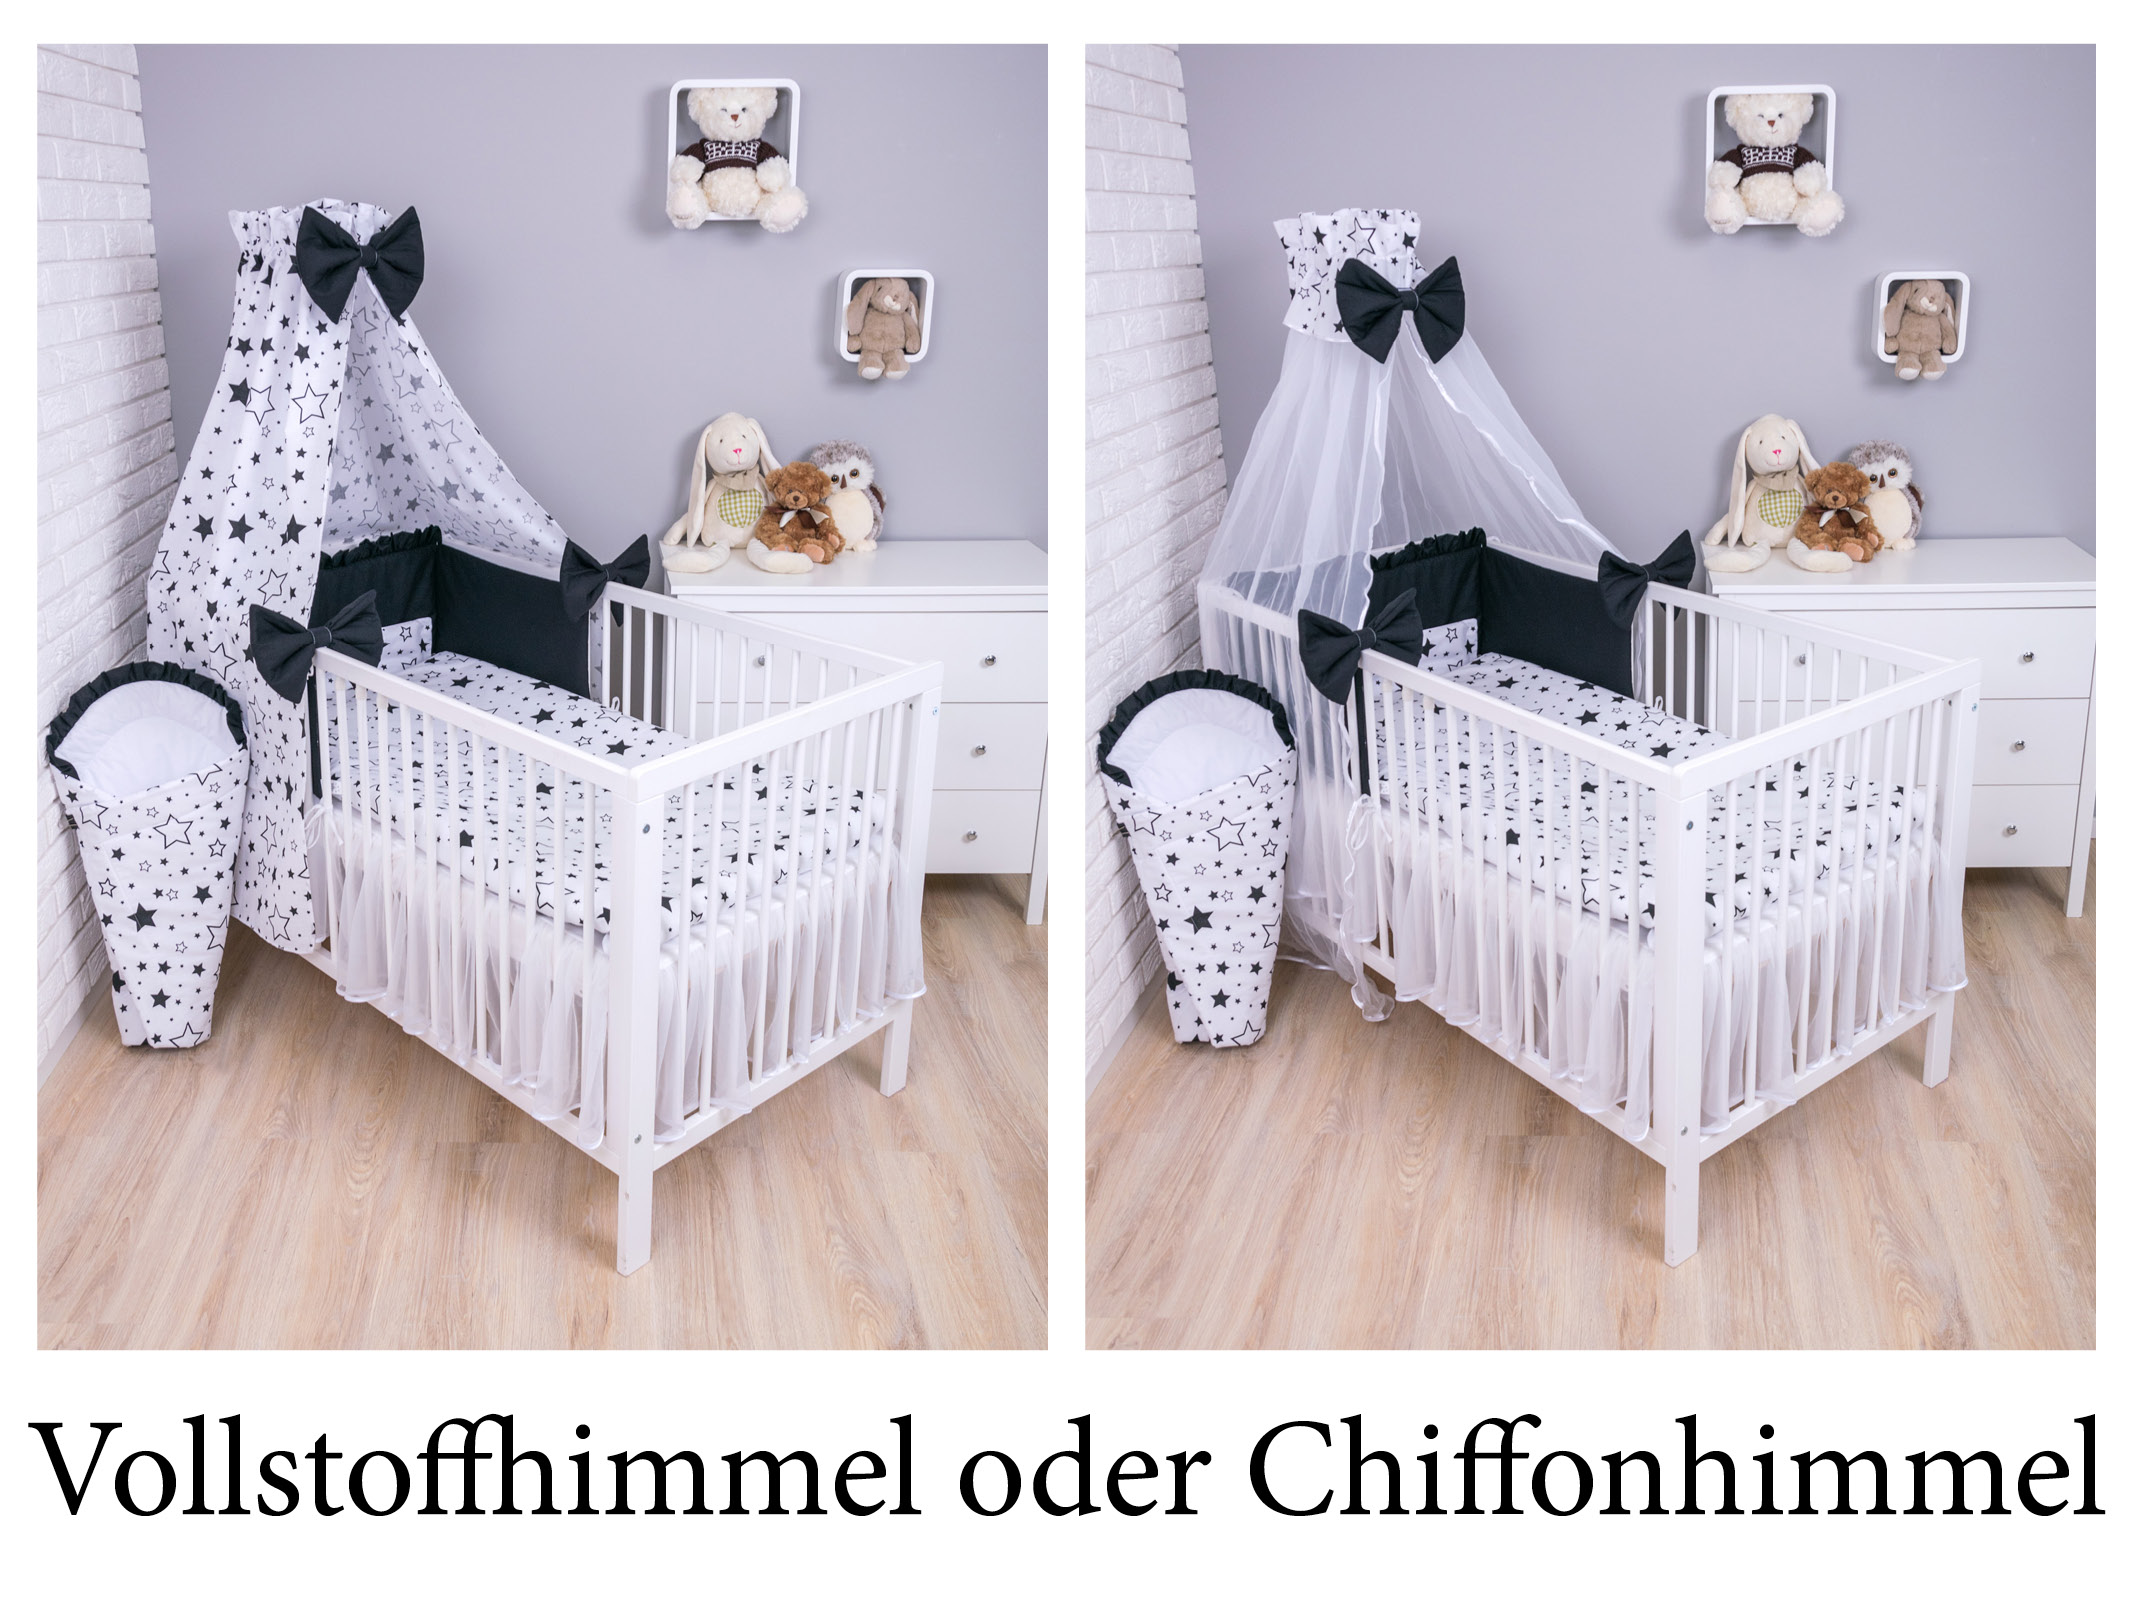 baby bettw sche bettset mit nestchen kinderbettw sche himmel 100x135cm 7 tlg ebay. Black Bedroom Furniture Sets. Home Design Ideas